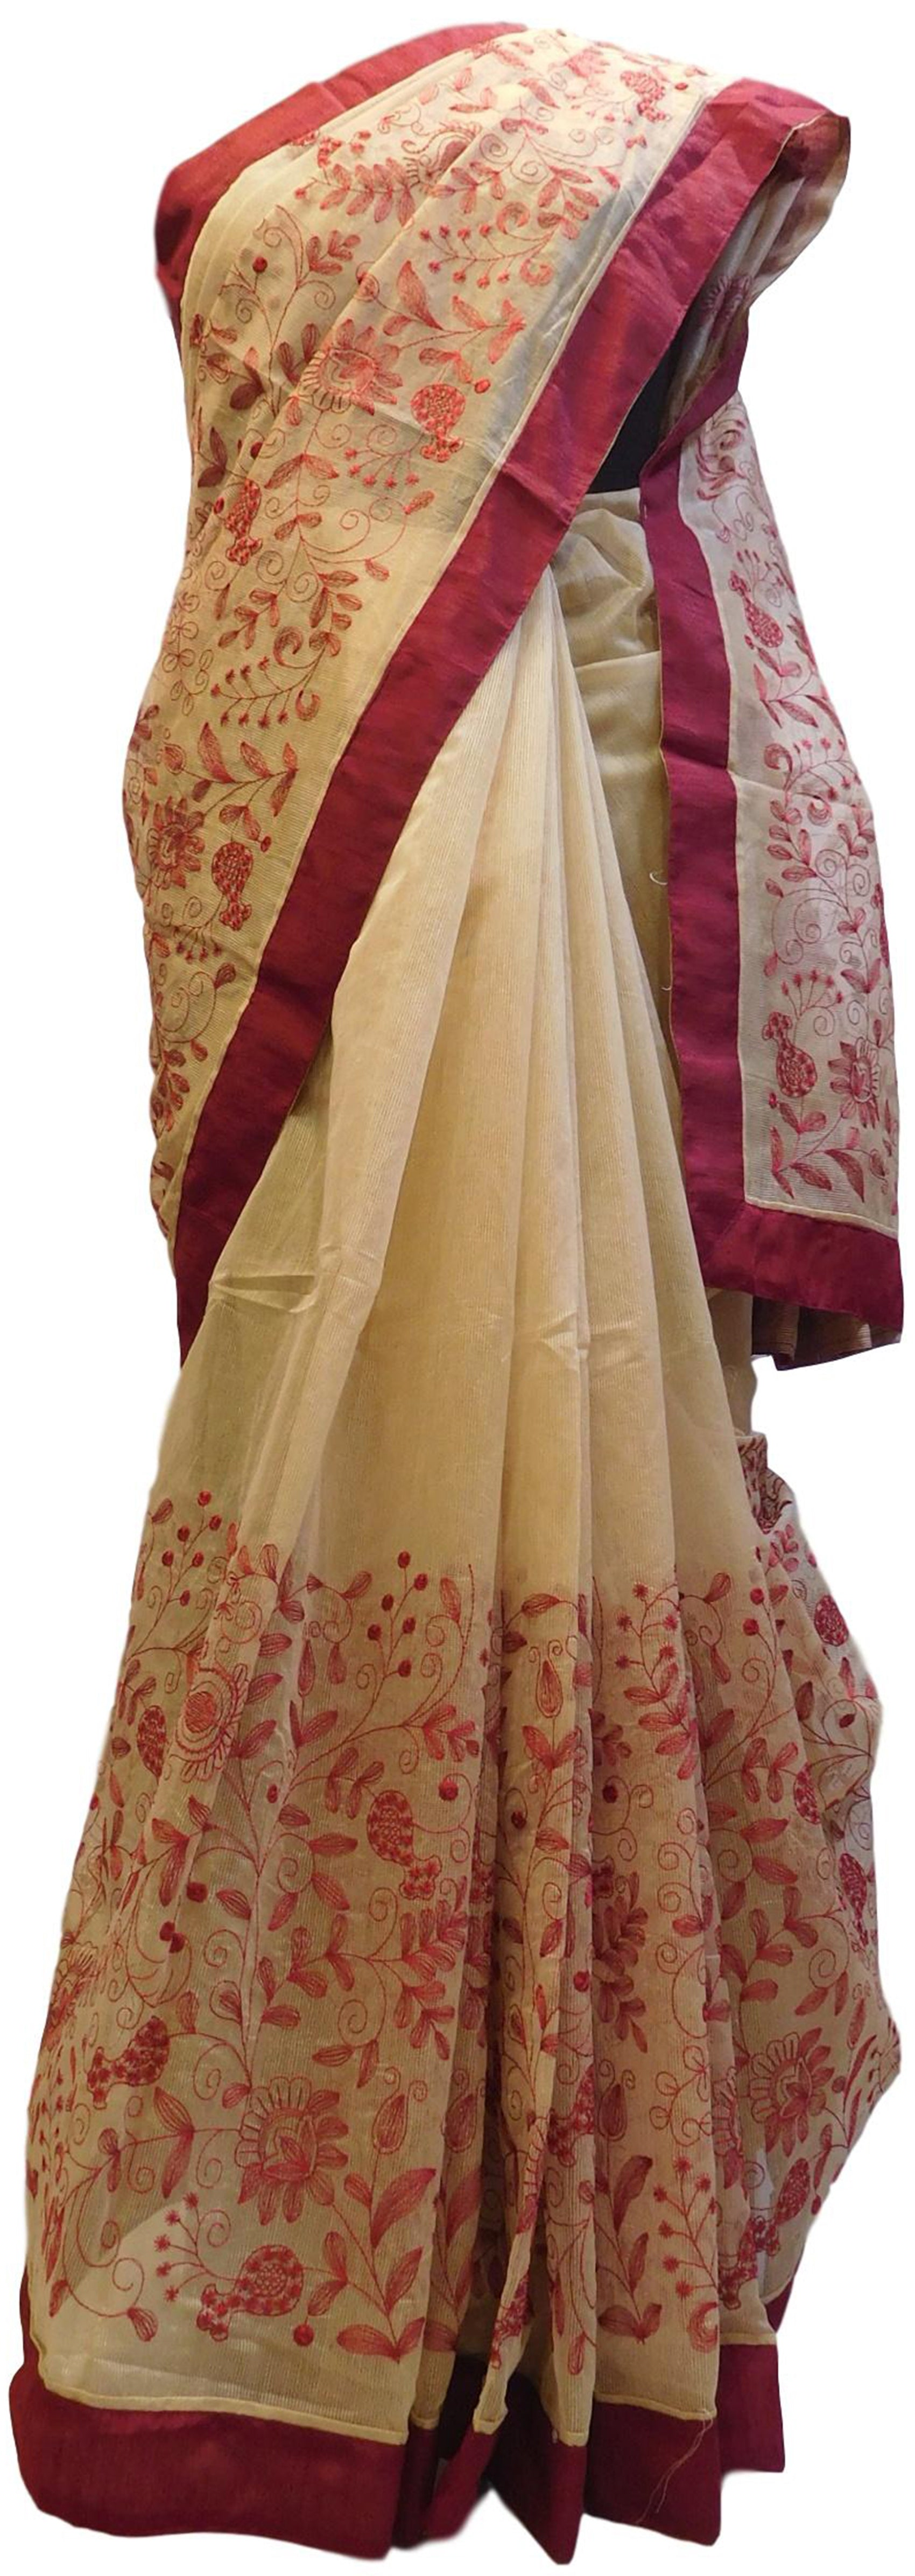 Beige Designer PartyWear Pure Supernet (Cotton) Thread Work Saree Sari With Red Taping